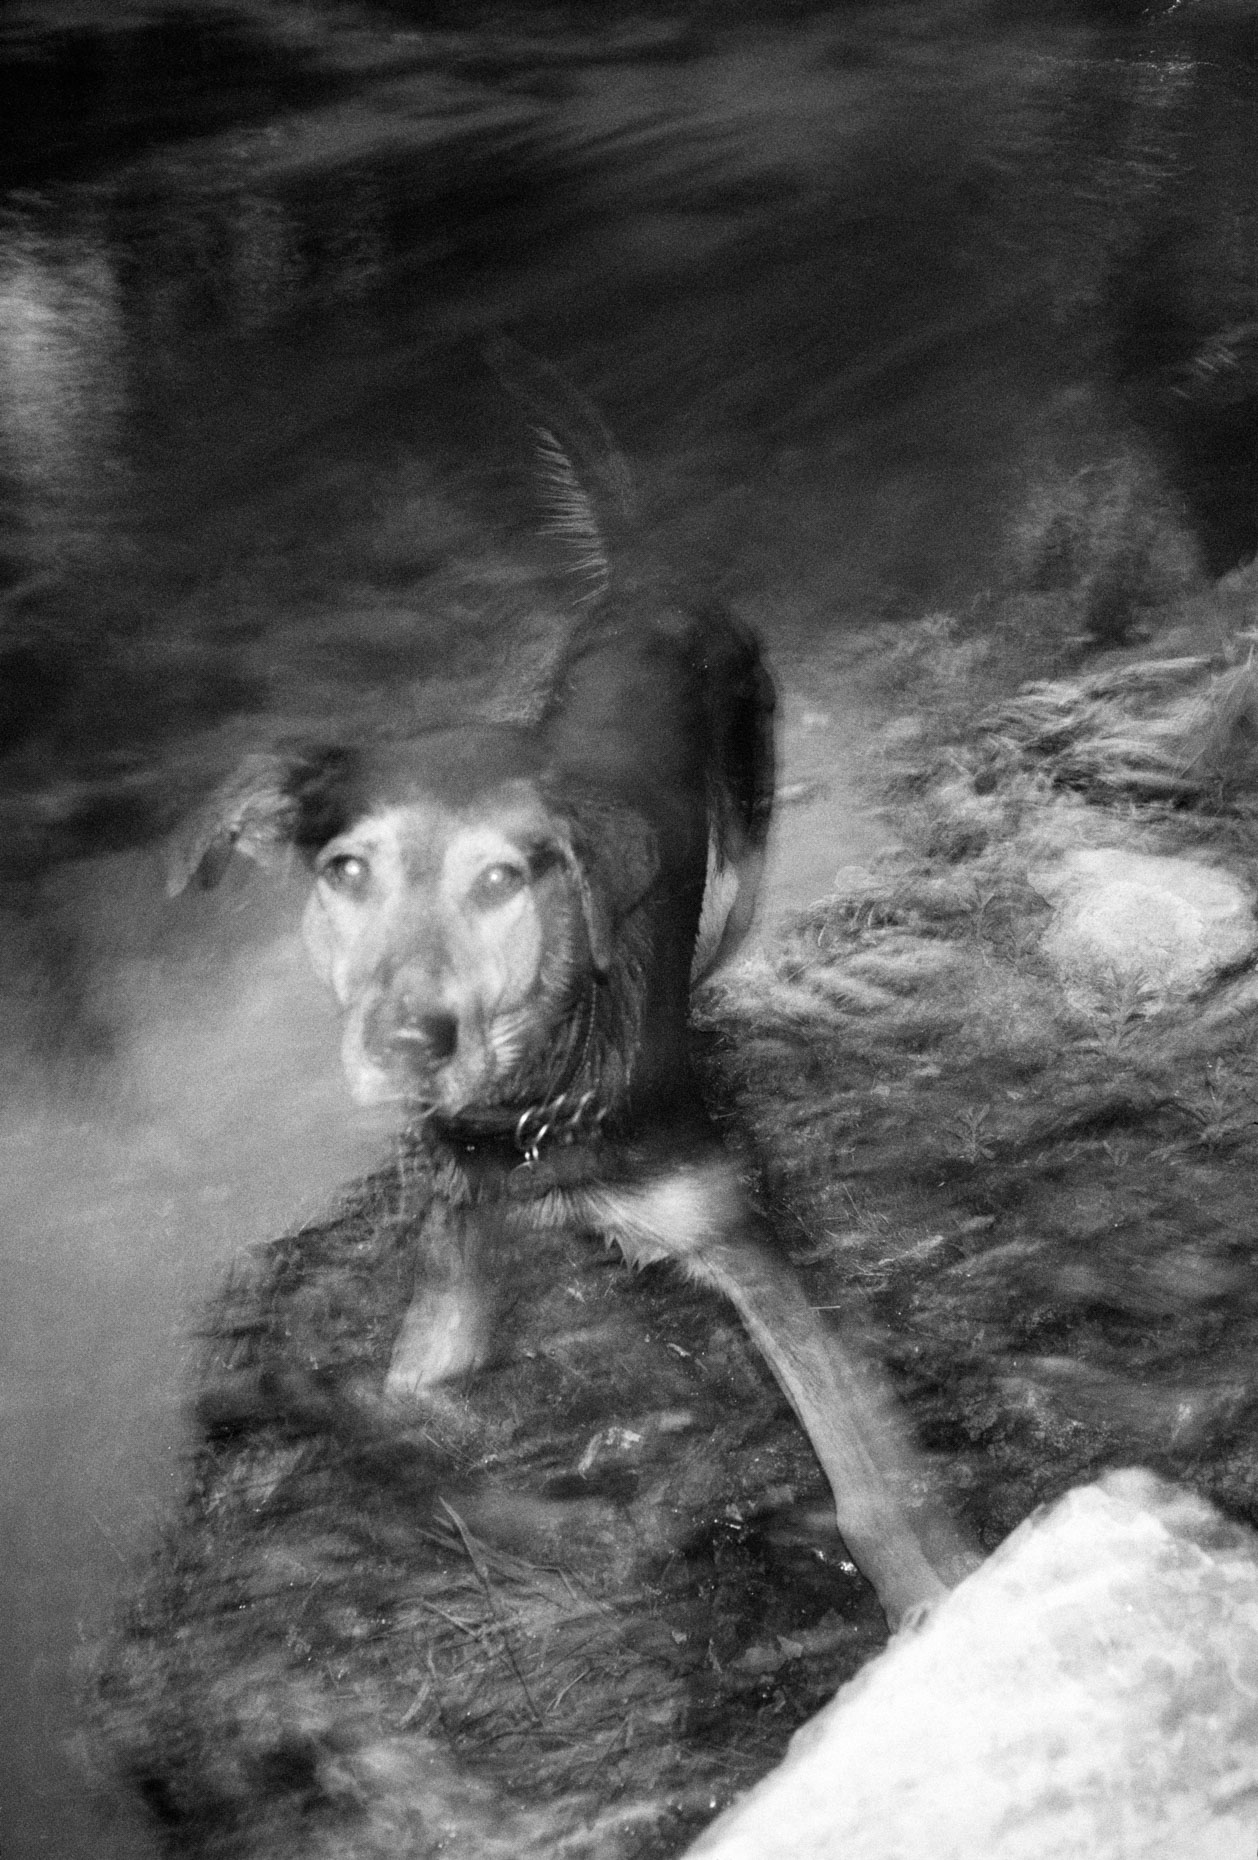 The Lurcher, Isle sur la Sorgue